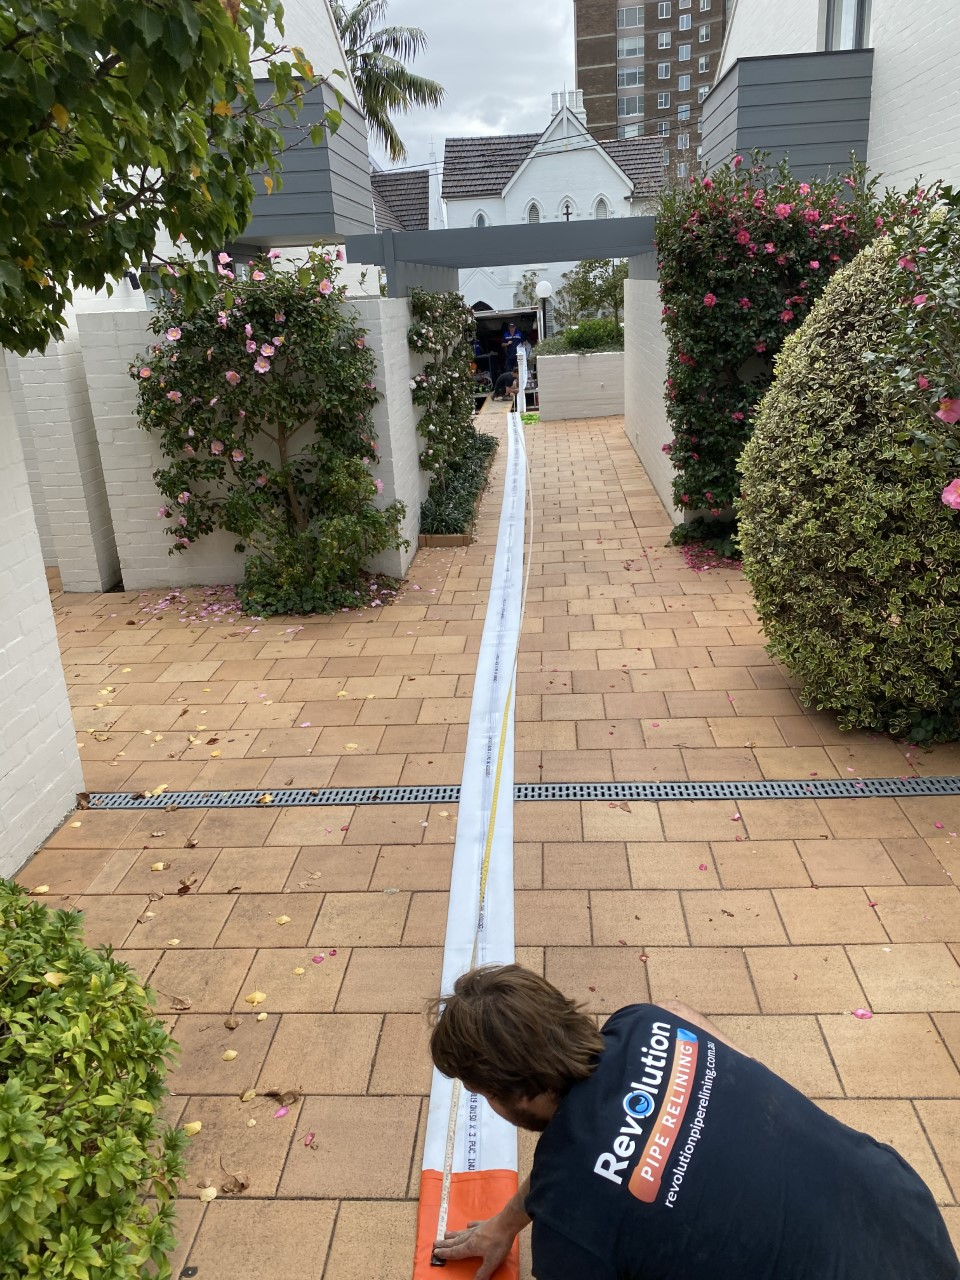 Measuring liner for pipe relining image by Revolutionpiperelining.com.au